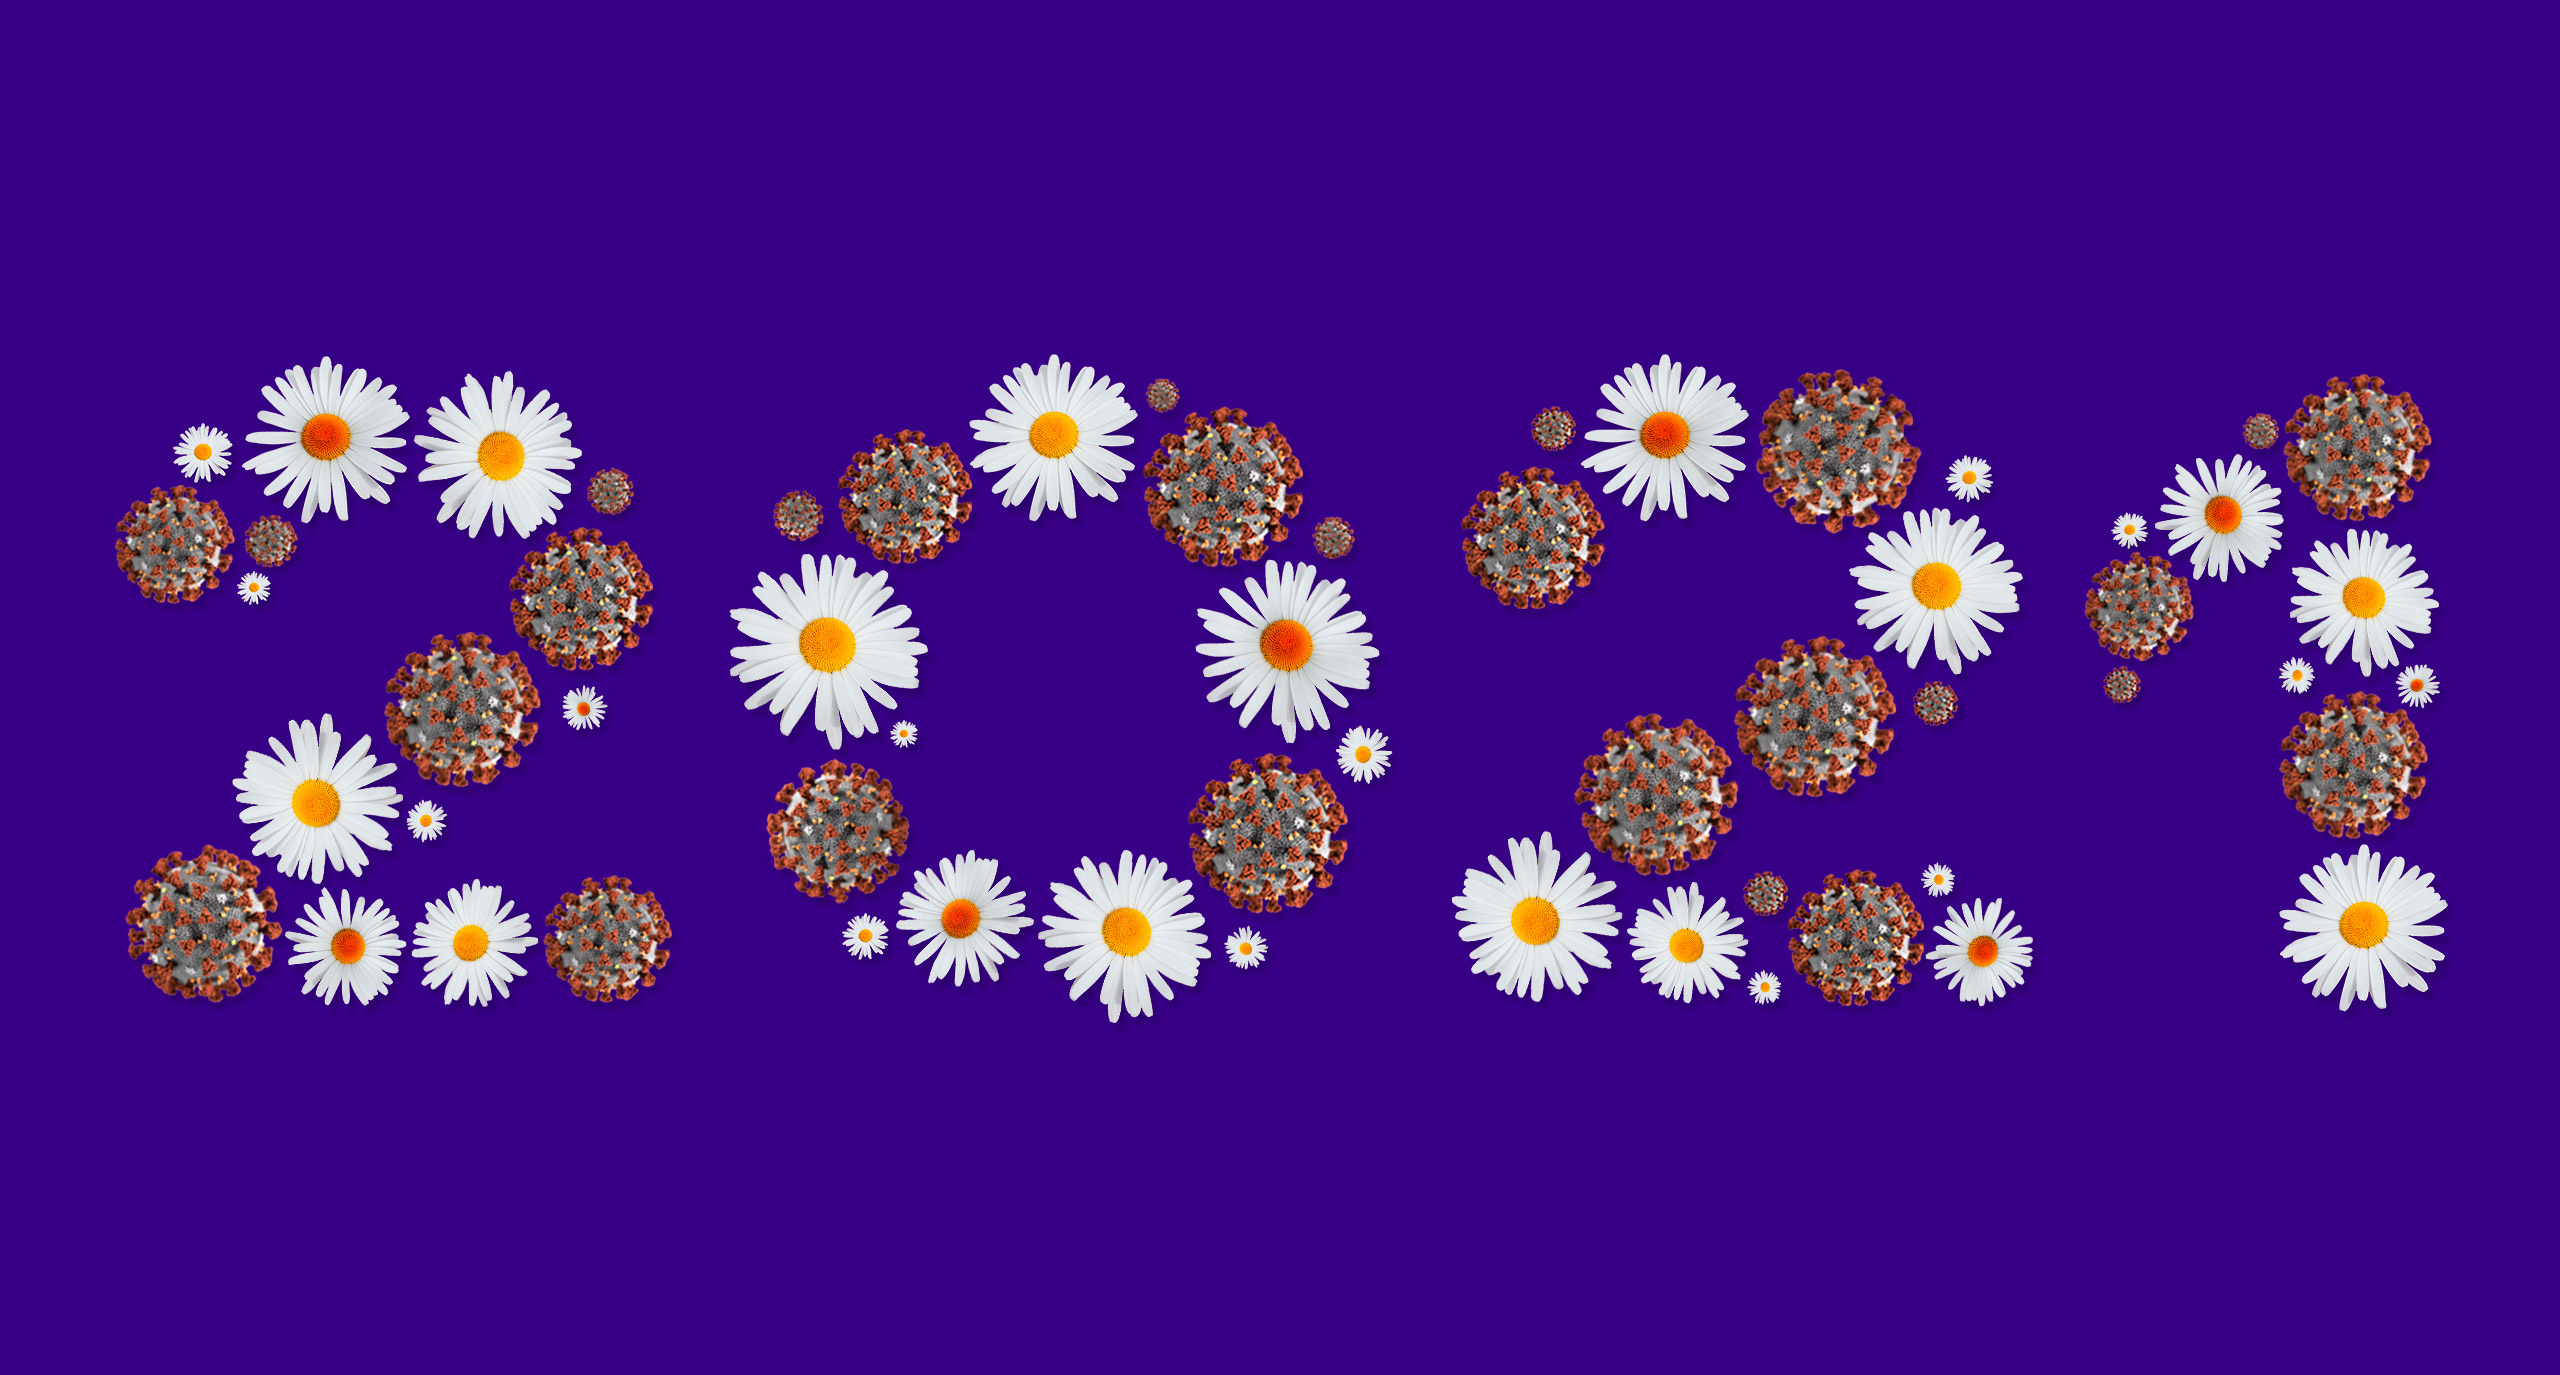 2021 written with white daisies and virions of Covid-19.